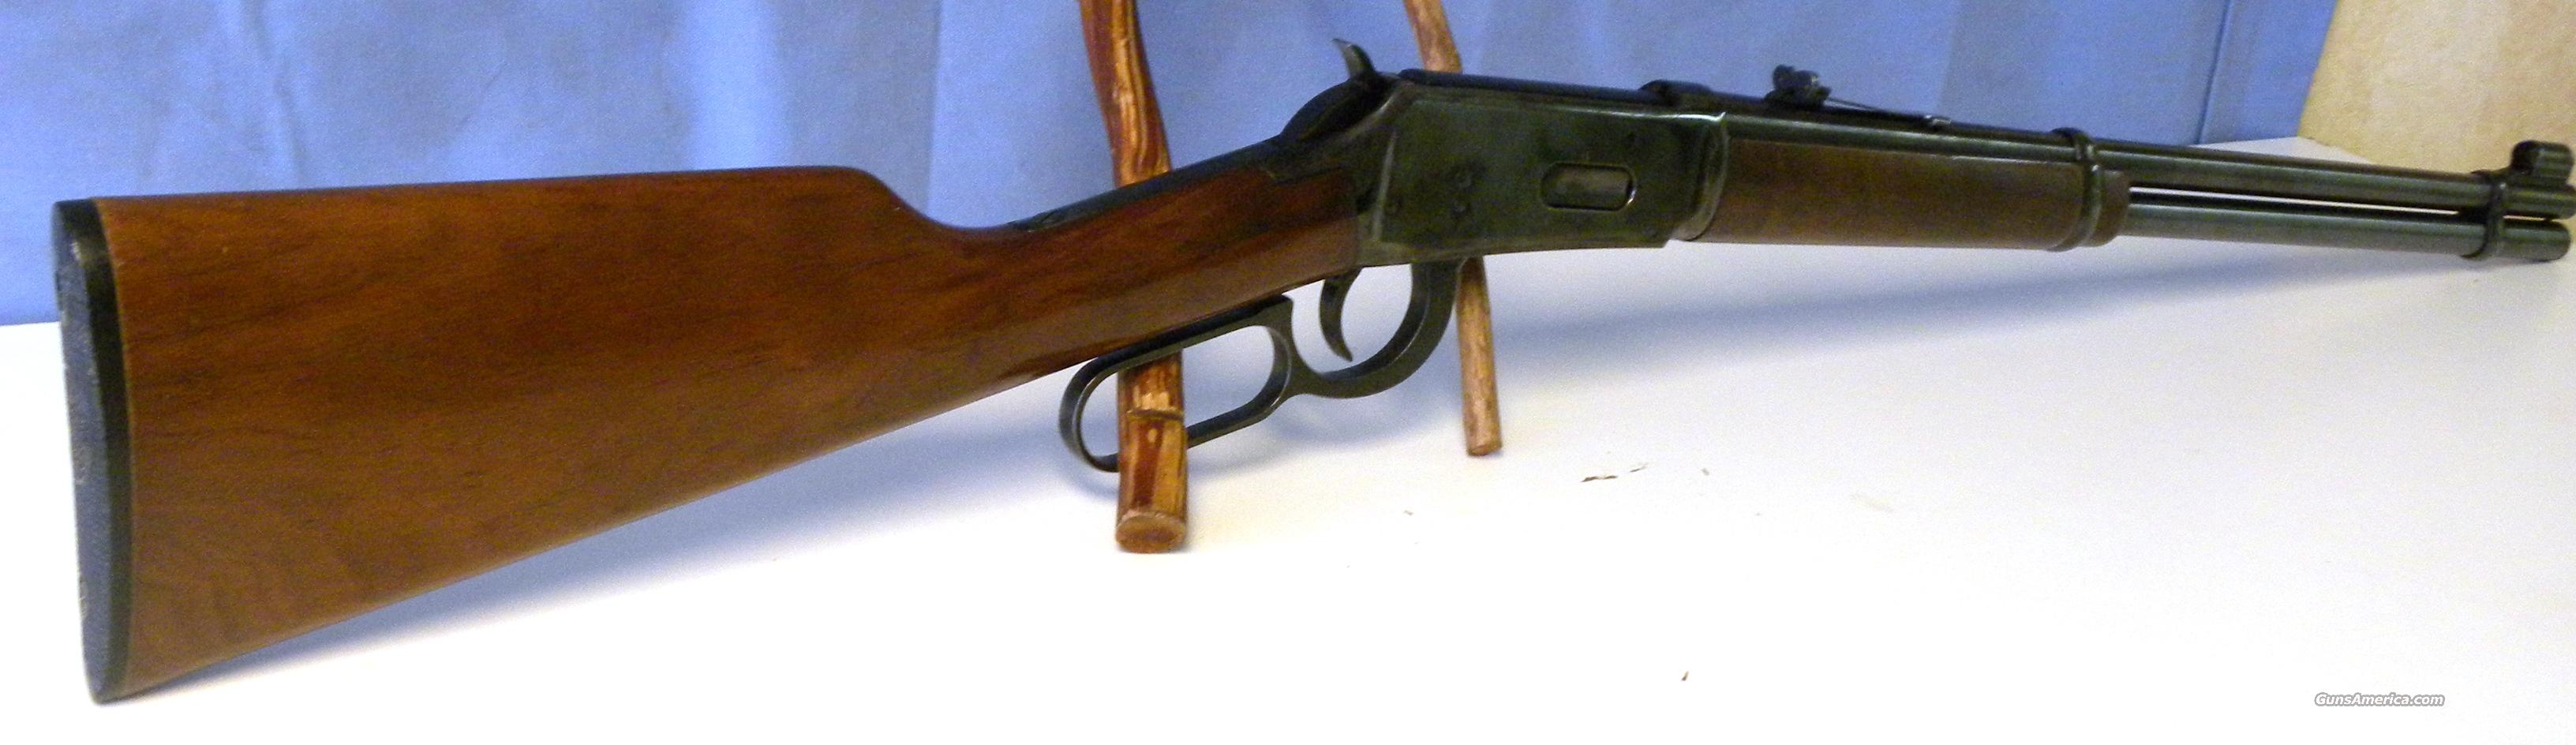 Winchester 94 .30-30 Lever Action Post-64  Guns > Rifles > Winchester Rifles - Modern Lever > Model 94 > Post-64